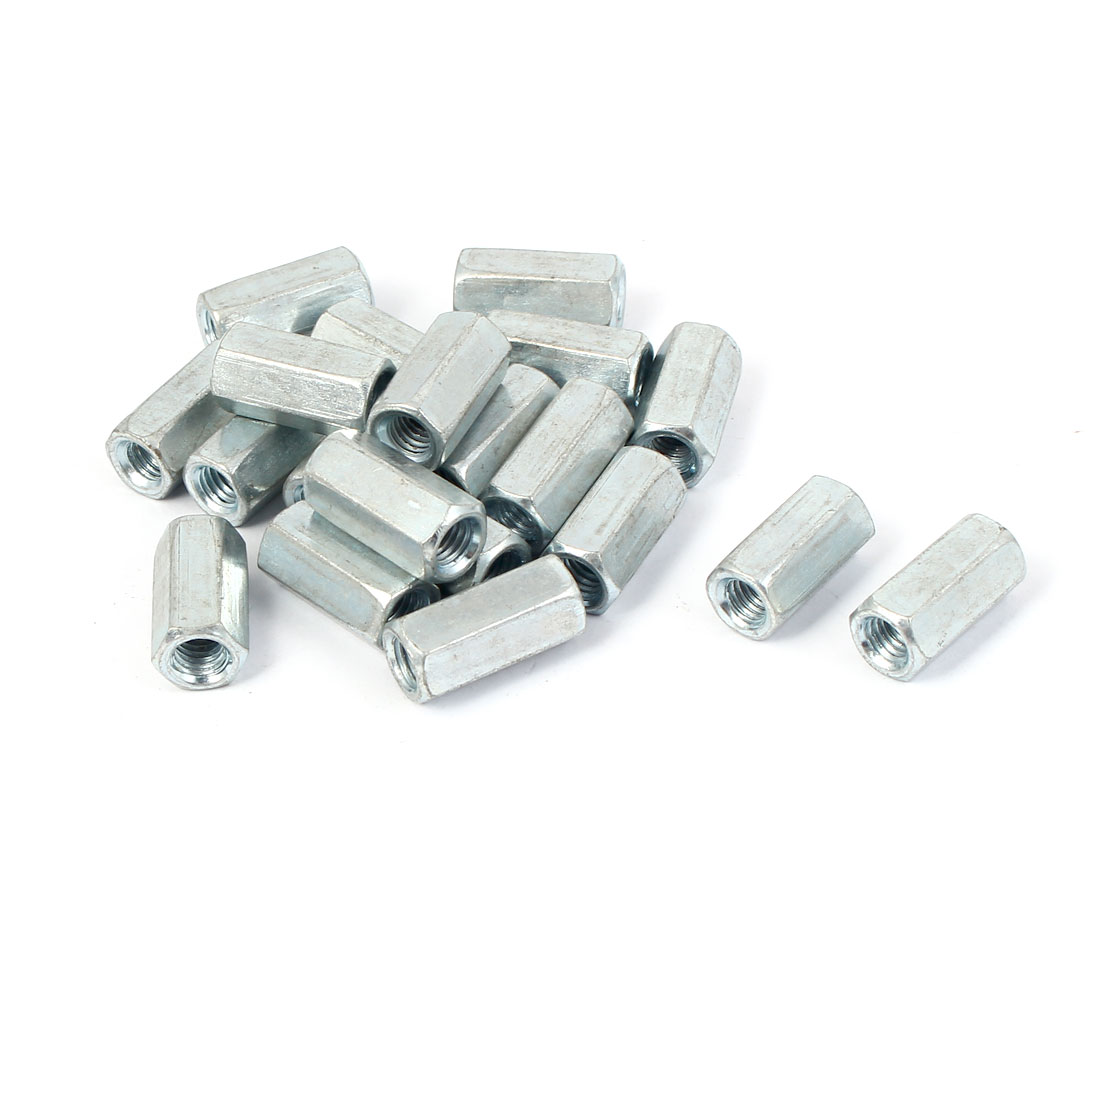 M6 Female Thread Rose Joint Adapter Threaded Rod Bar Stud Hex Coupling Nut 20PCS